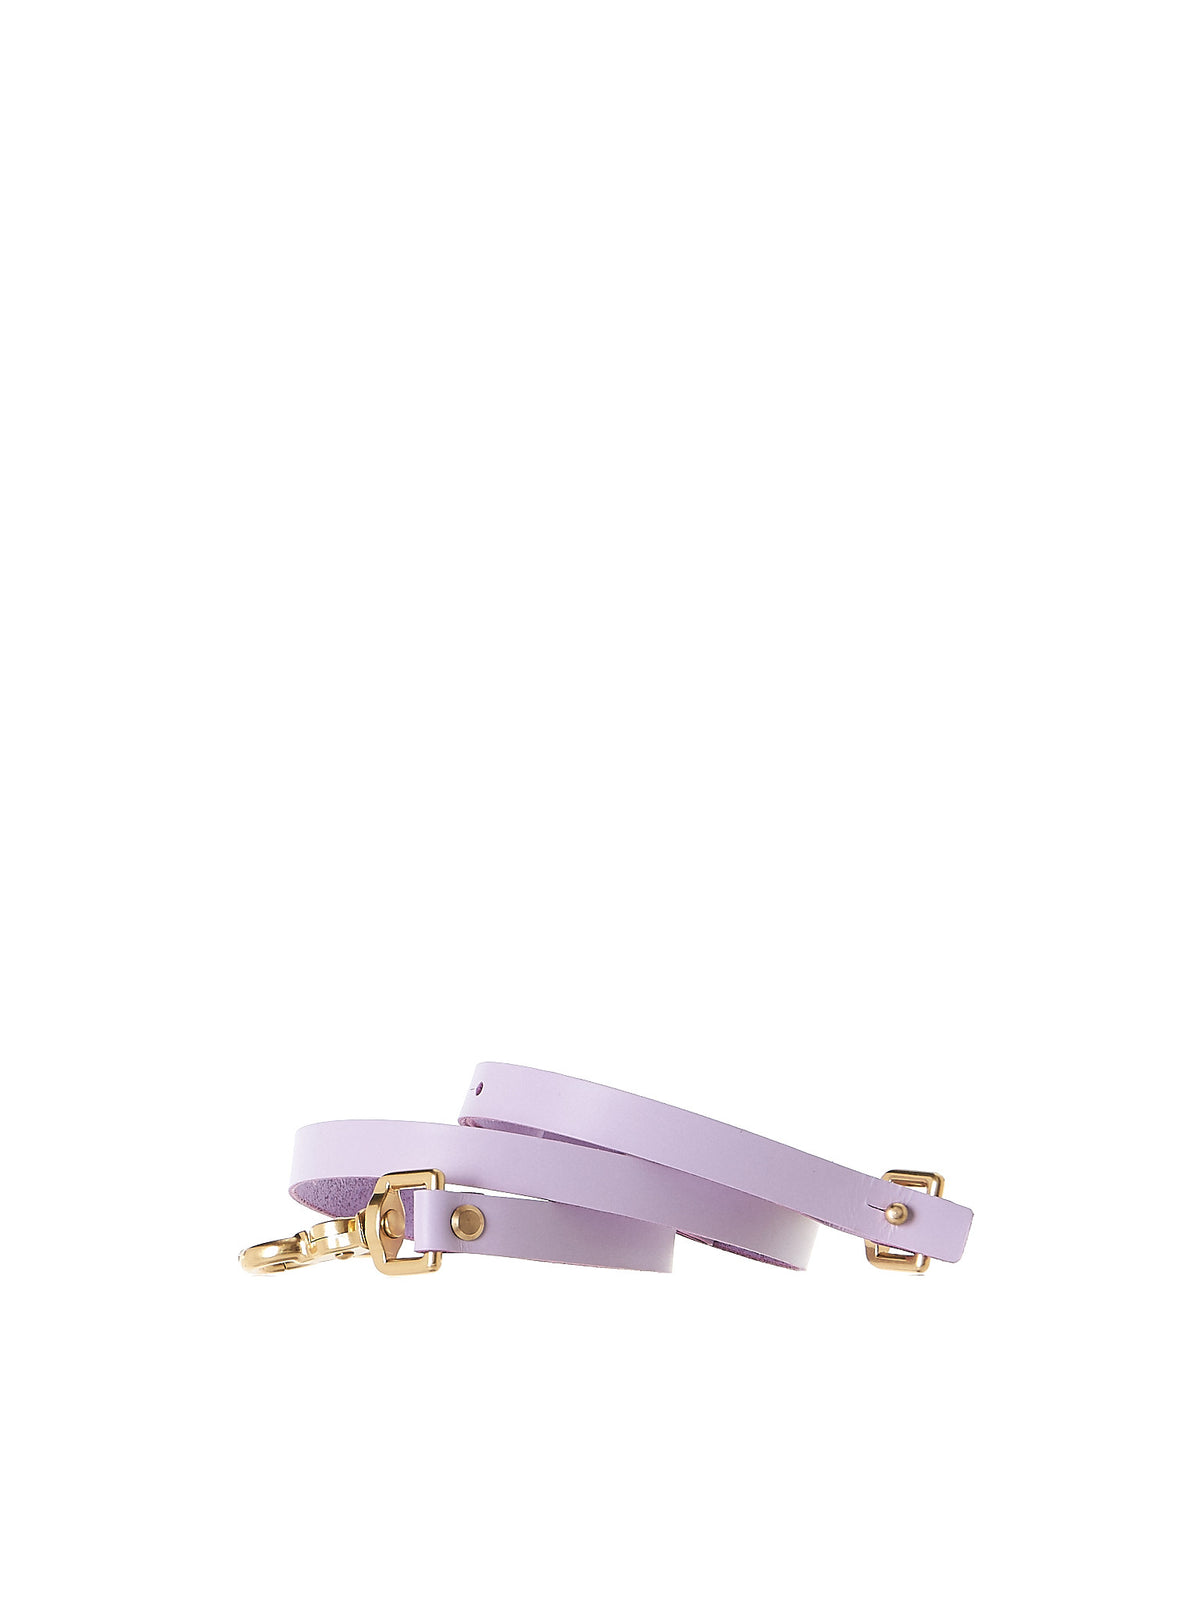 Ribbon Bag (NPSS17-16-LILAC) - H. Lorenzo